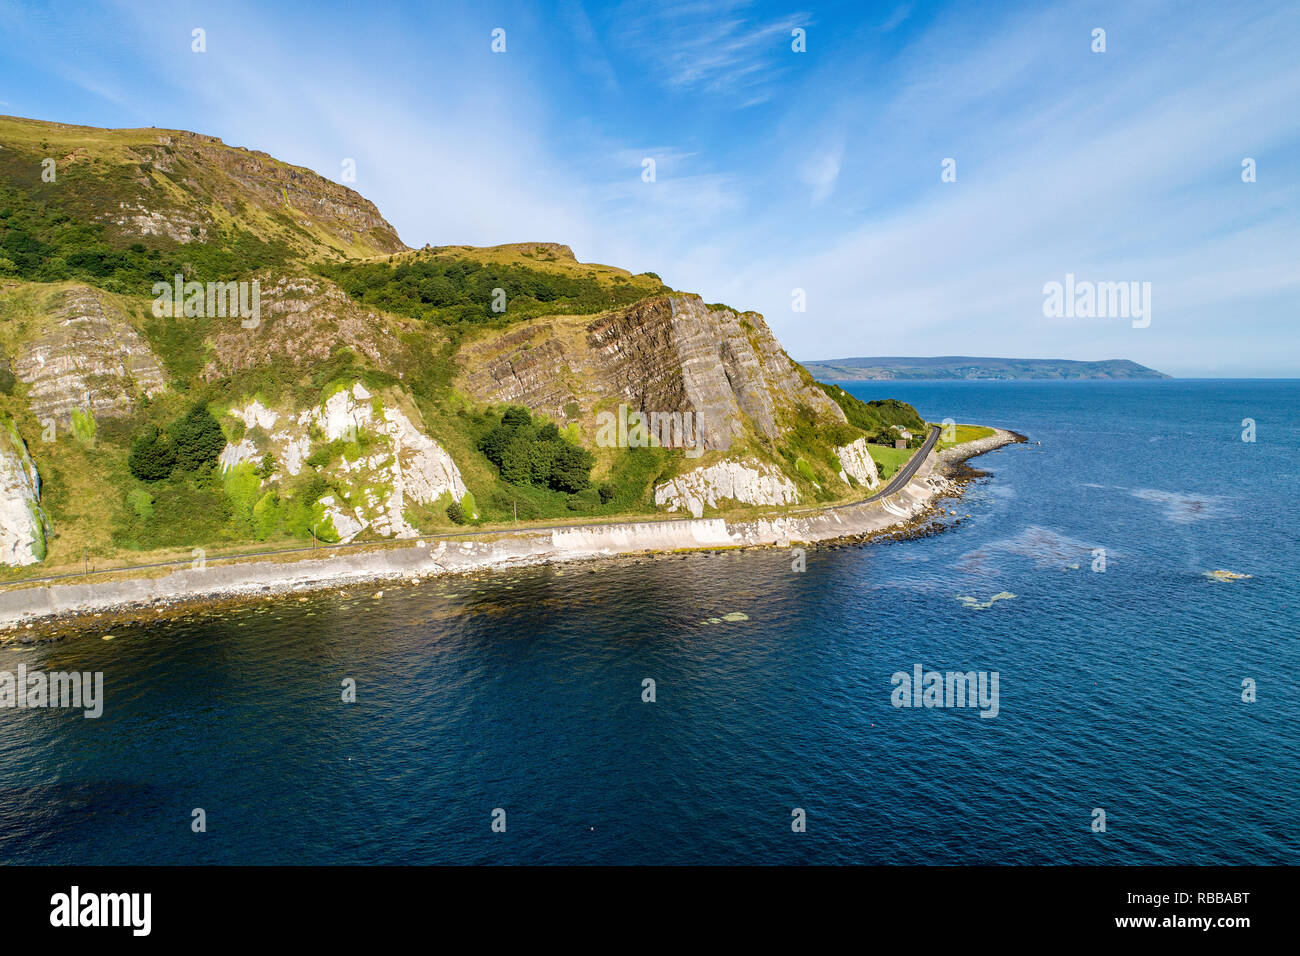 Northern Ireland, UK. Atlantic coast. Cliffs and A2 Antrim Coast Road, a.k.a. Giants Causeway Coastal Route. One of the most scenic coastal roads - Stock Image